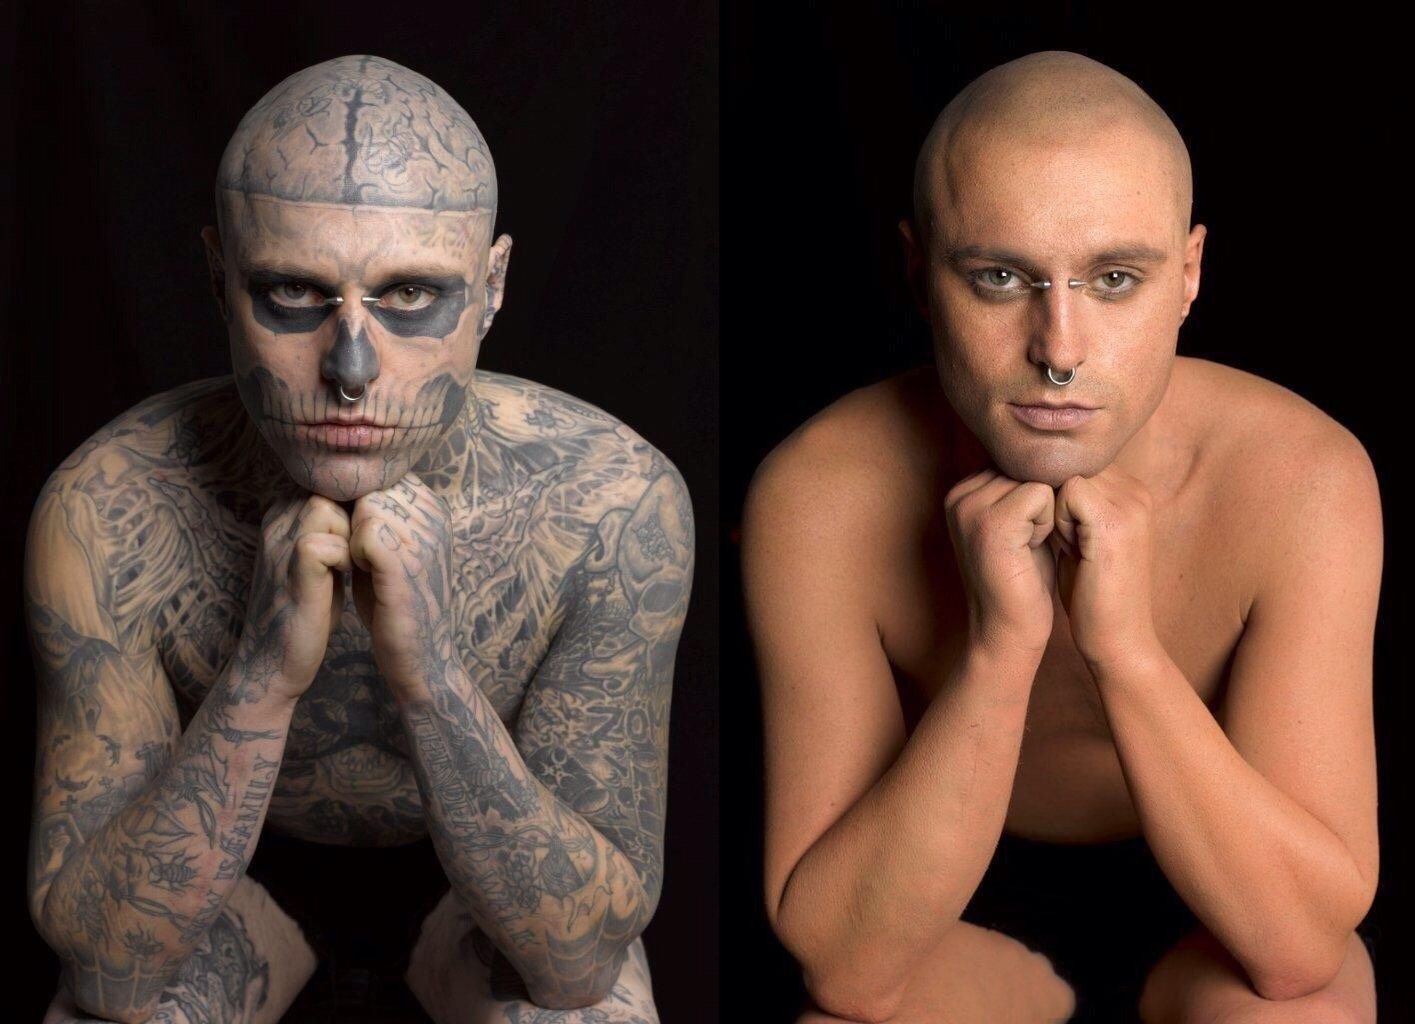 A Before And After Make Up Shoot With Rick Genest Aka Rico The Zombie Boy Famous Tattooed Actor From Canada Rick Genest Human Canvas Punk Tattoo